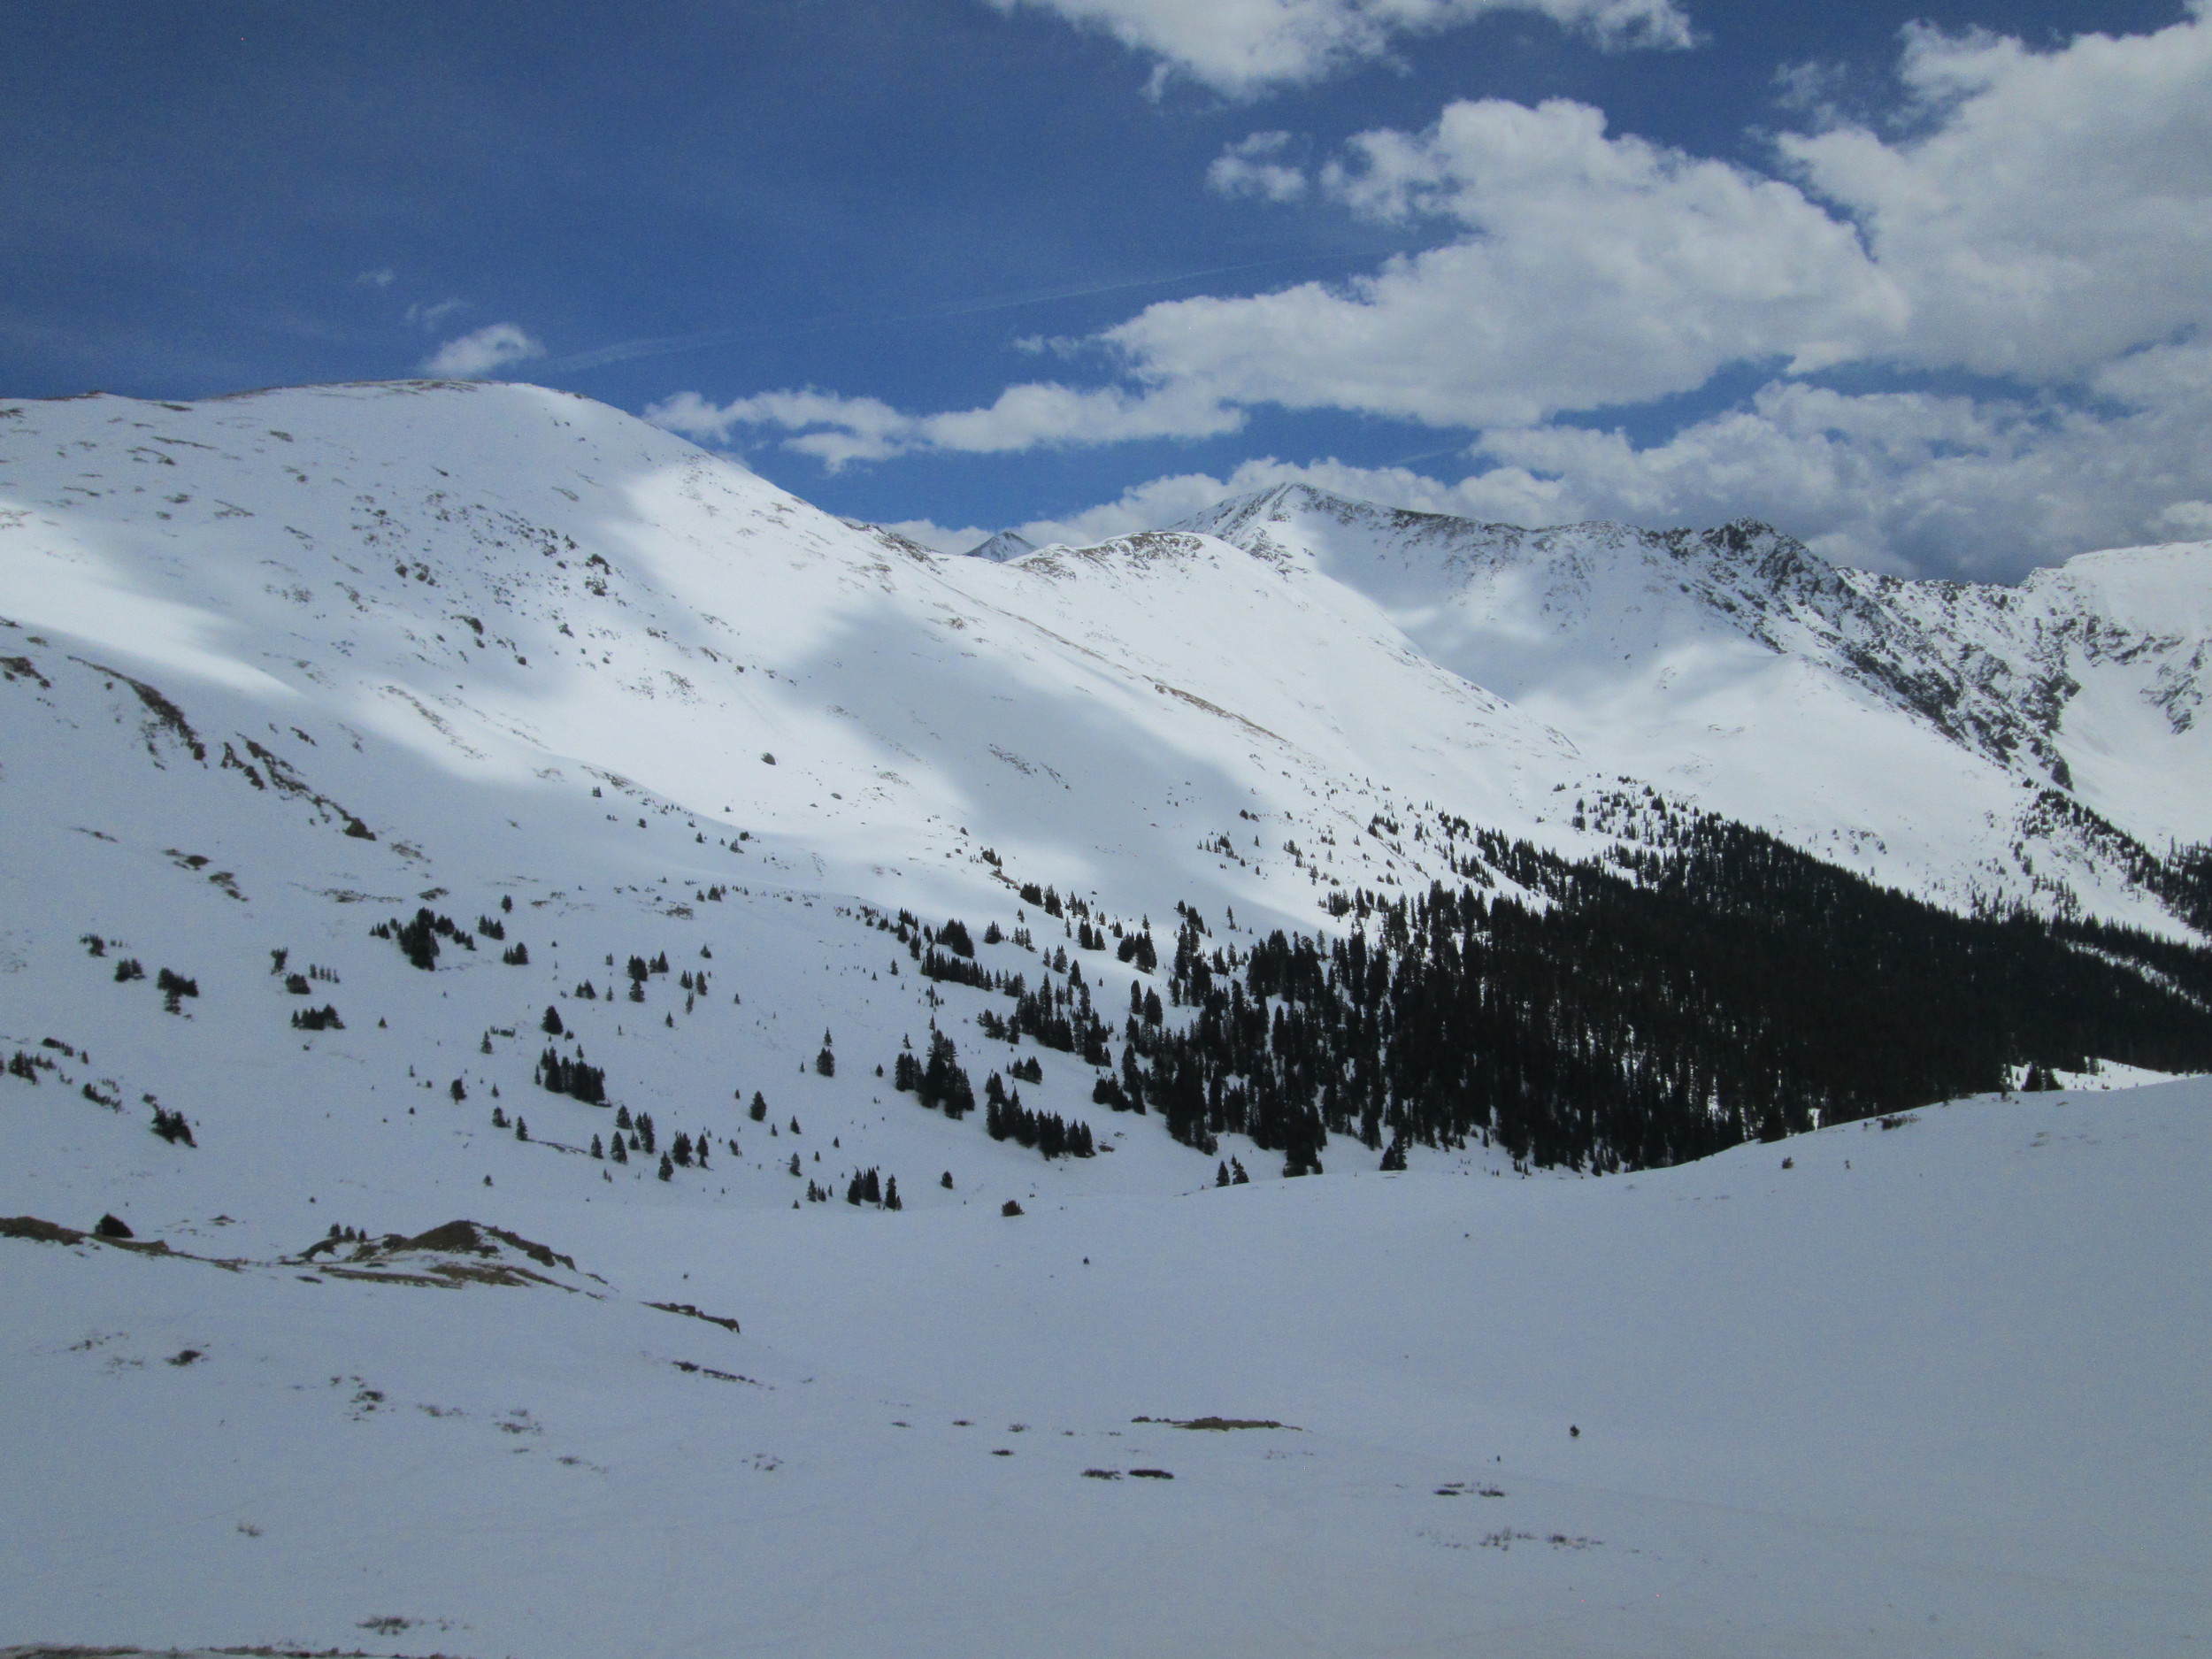 Looking easterly from Loveland Pass on April 22. Snow still covers majority of landscape in the surrounding area.